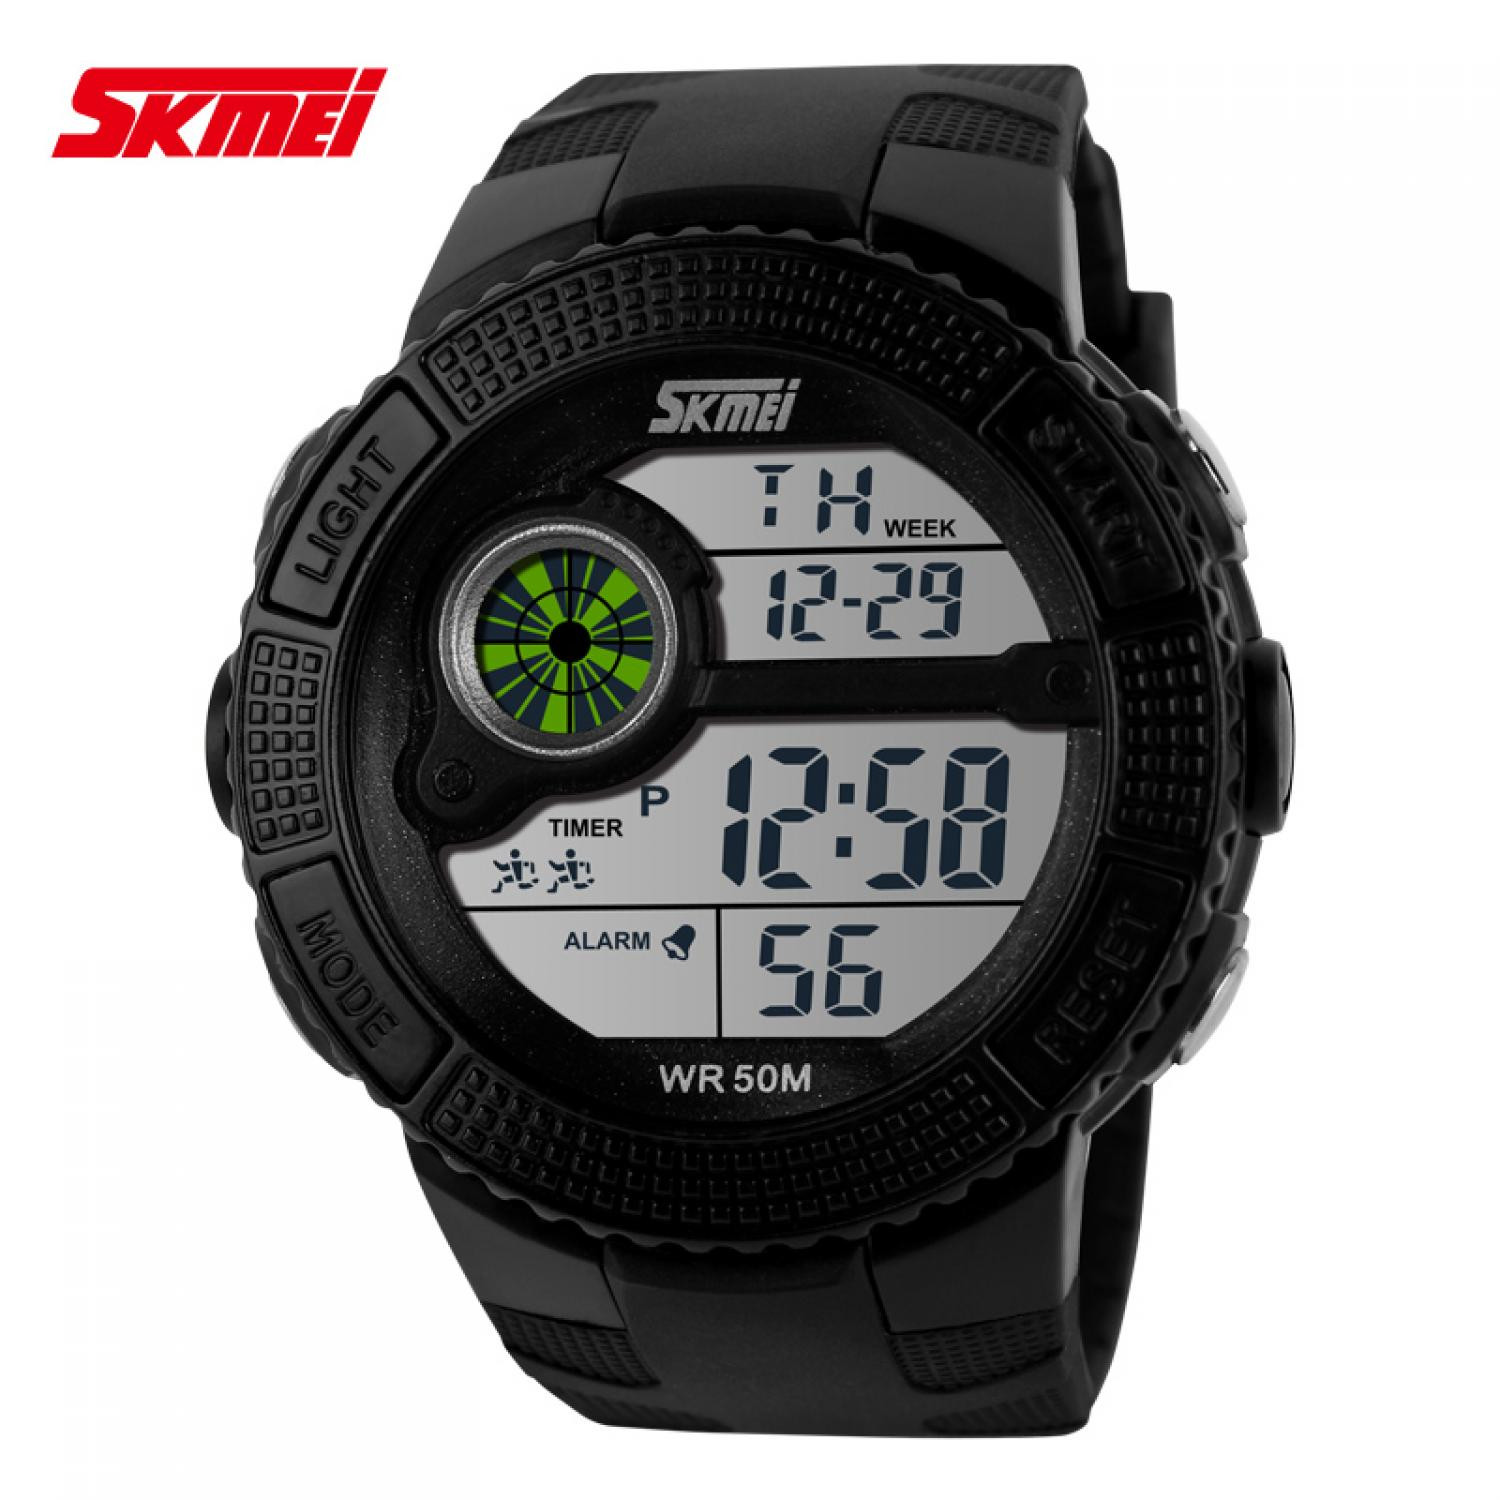 Jam Tangan Pria SKMEI Digital Sport LED Watch Original DG1027